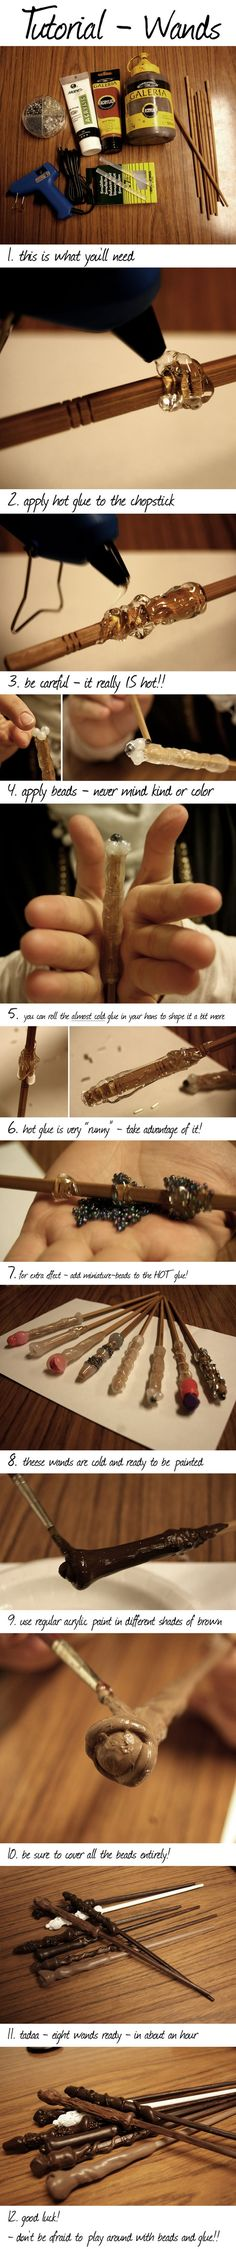 Make your own Harry Potter wands :)                                                                                                                                                     More